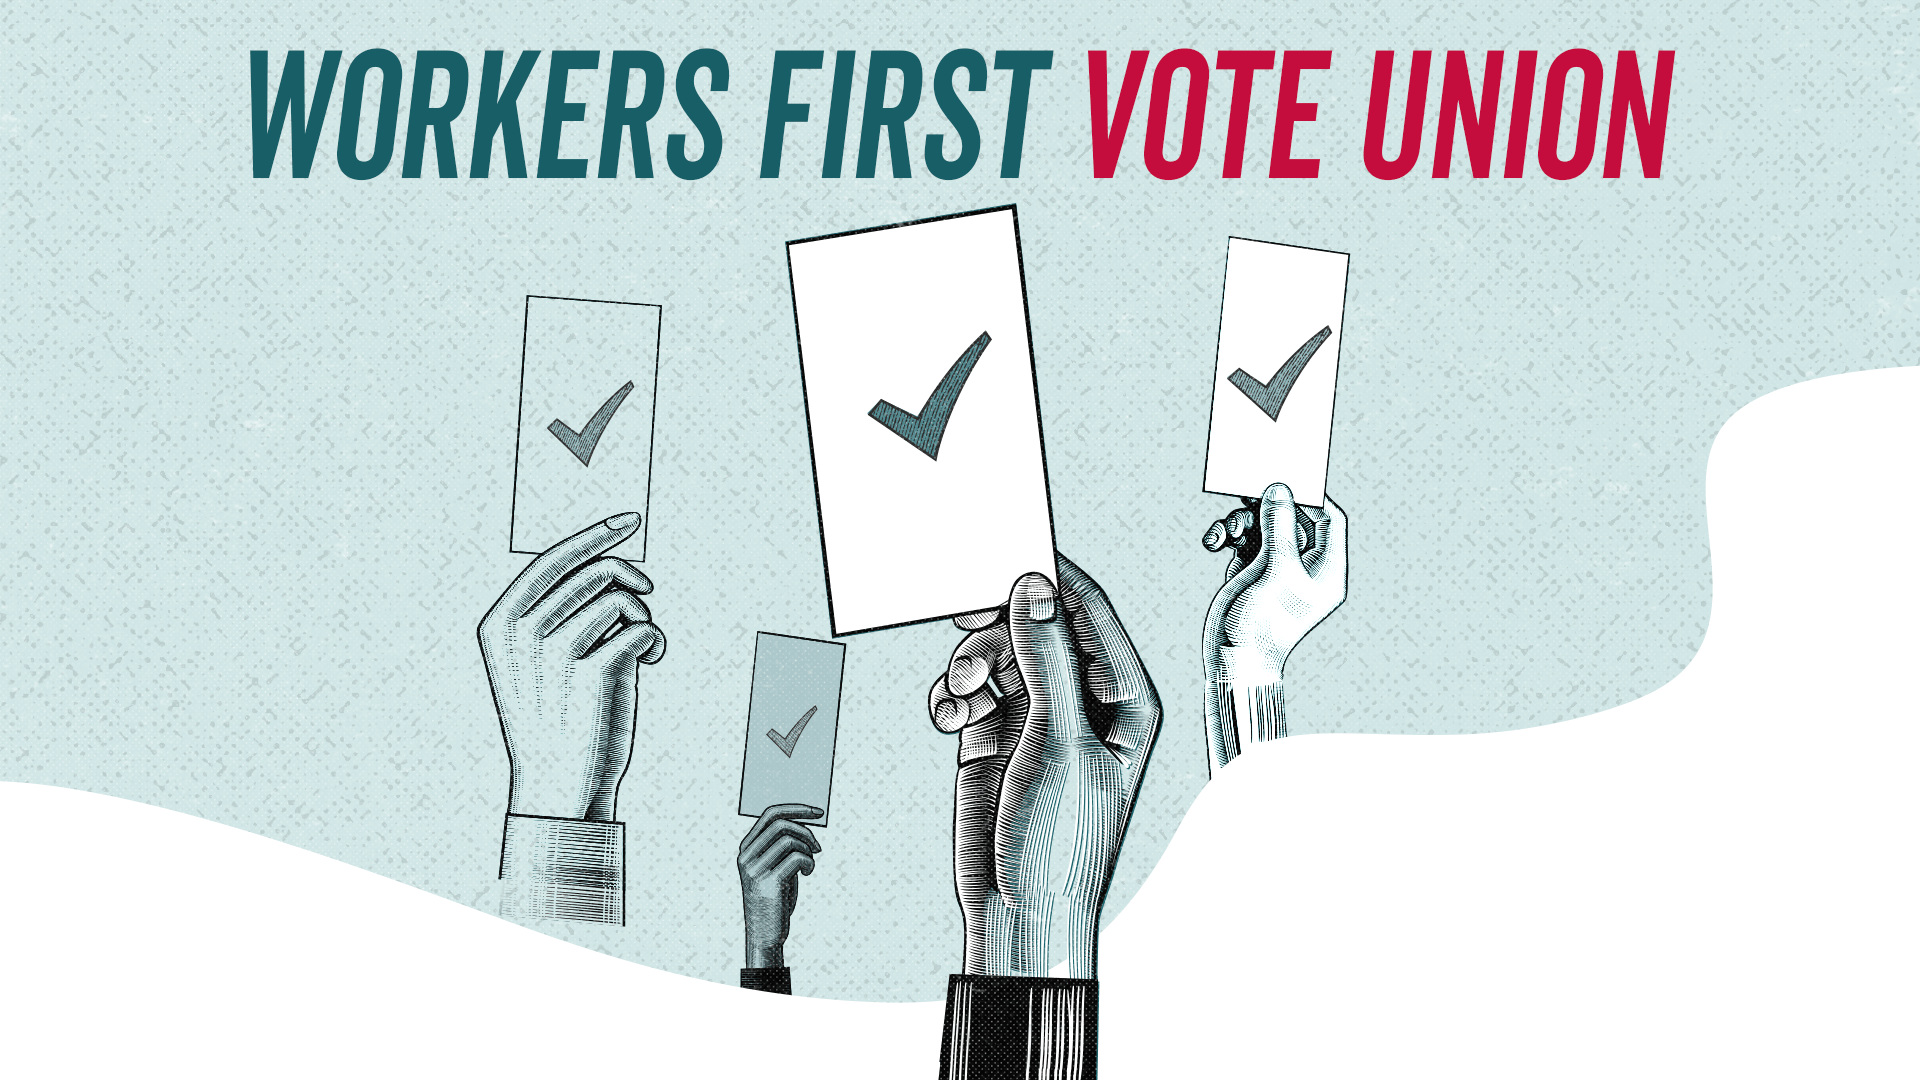 Workers First. Vote Union.